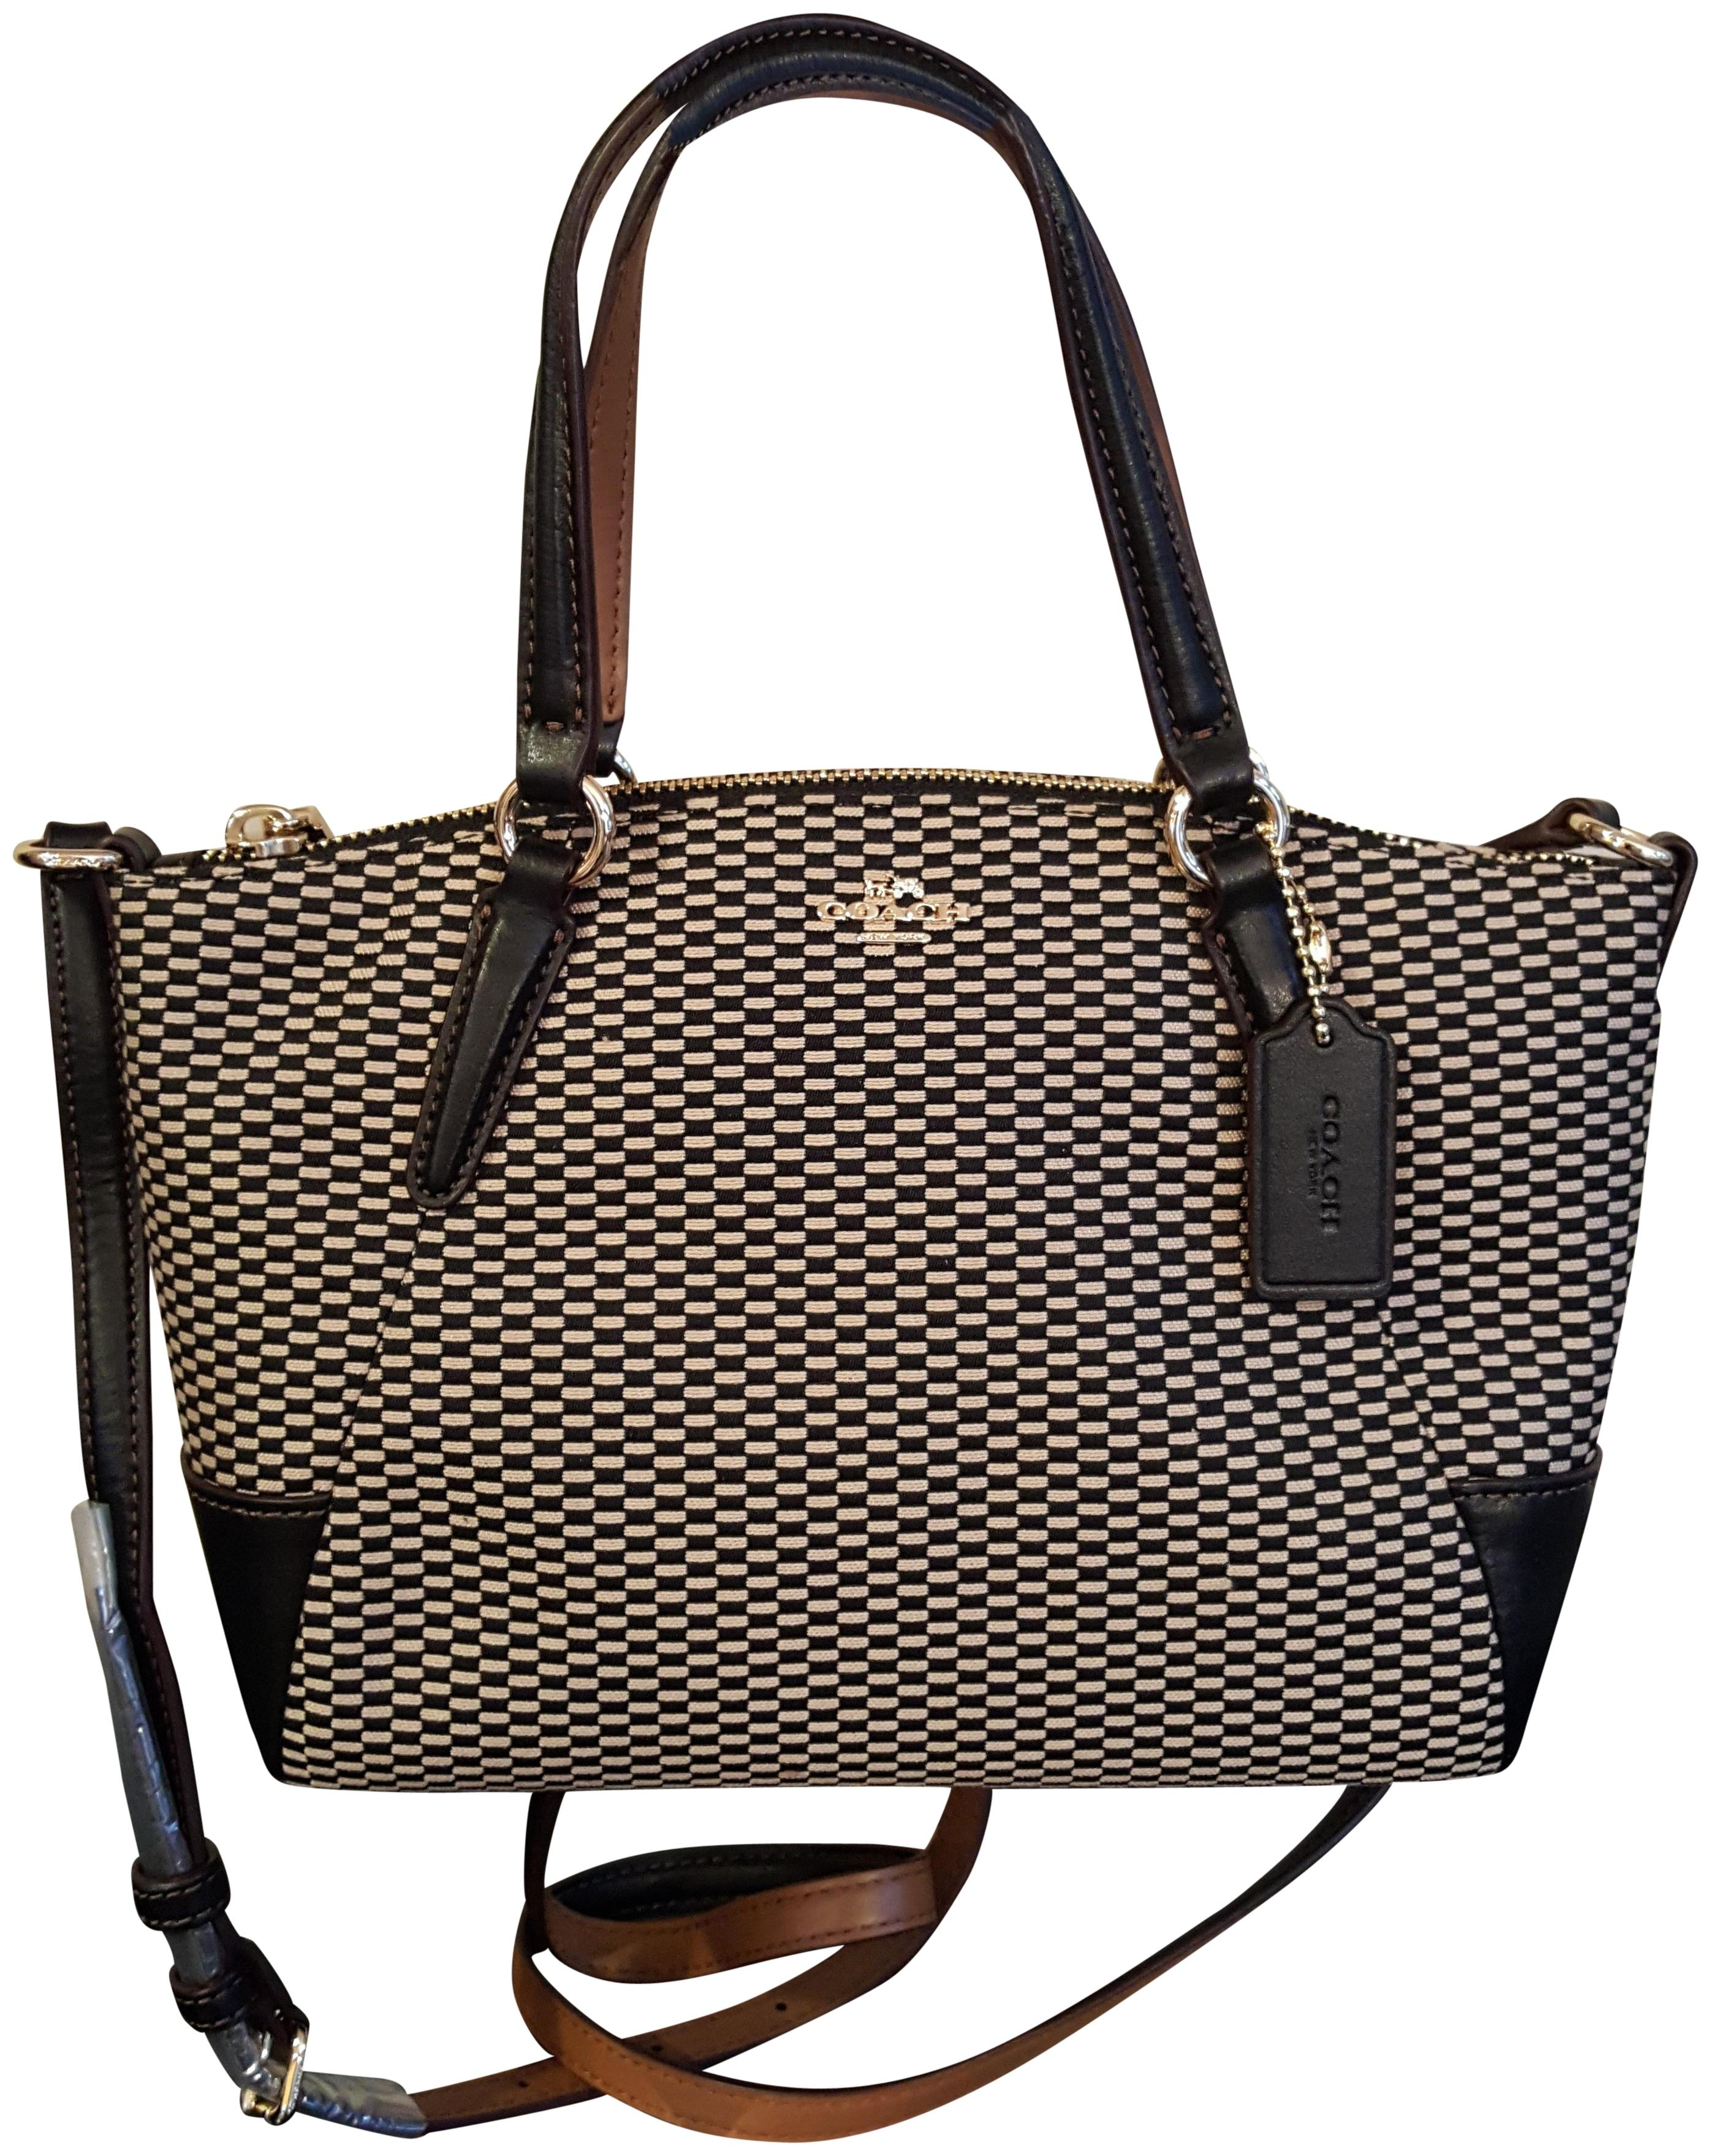 80f029e02f924 ... promo code for coach kelsey crossbody exploded rep legacy jaquard  satchel in milk black 653a1 b1cfd